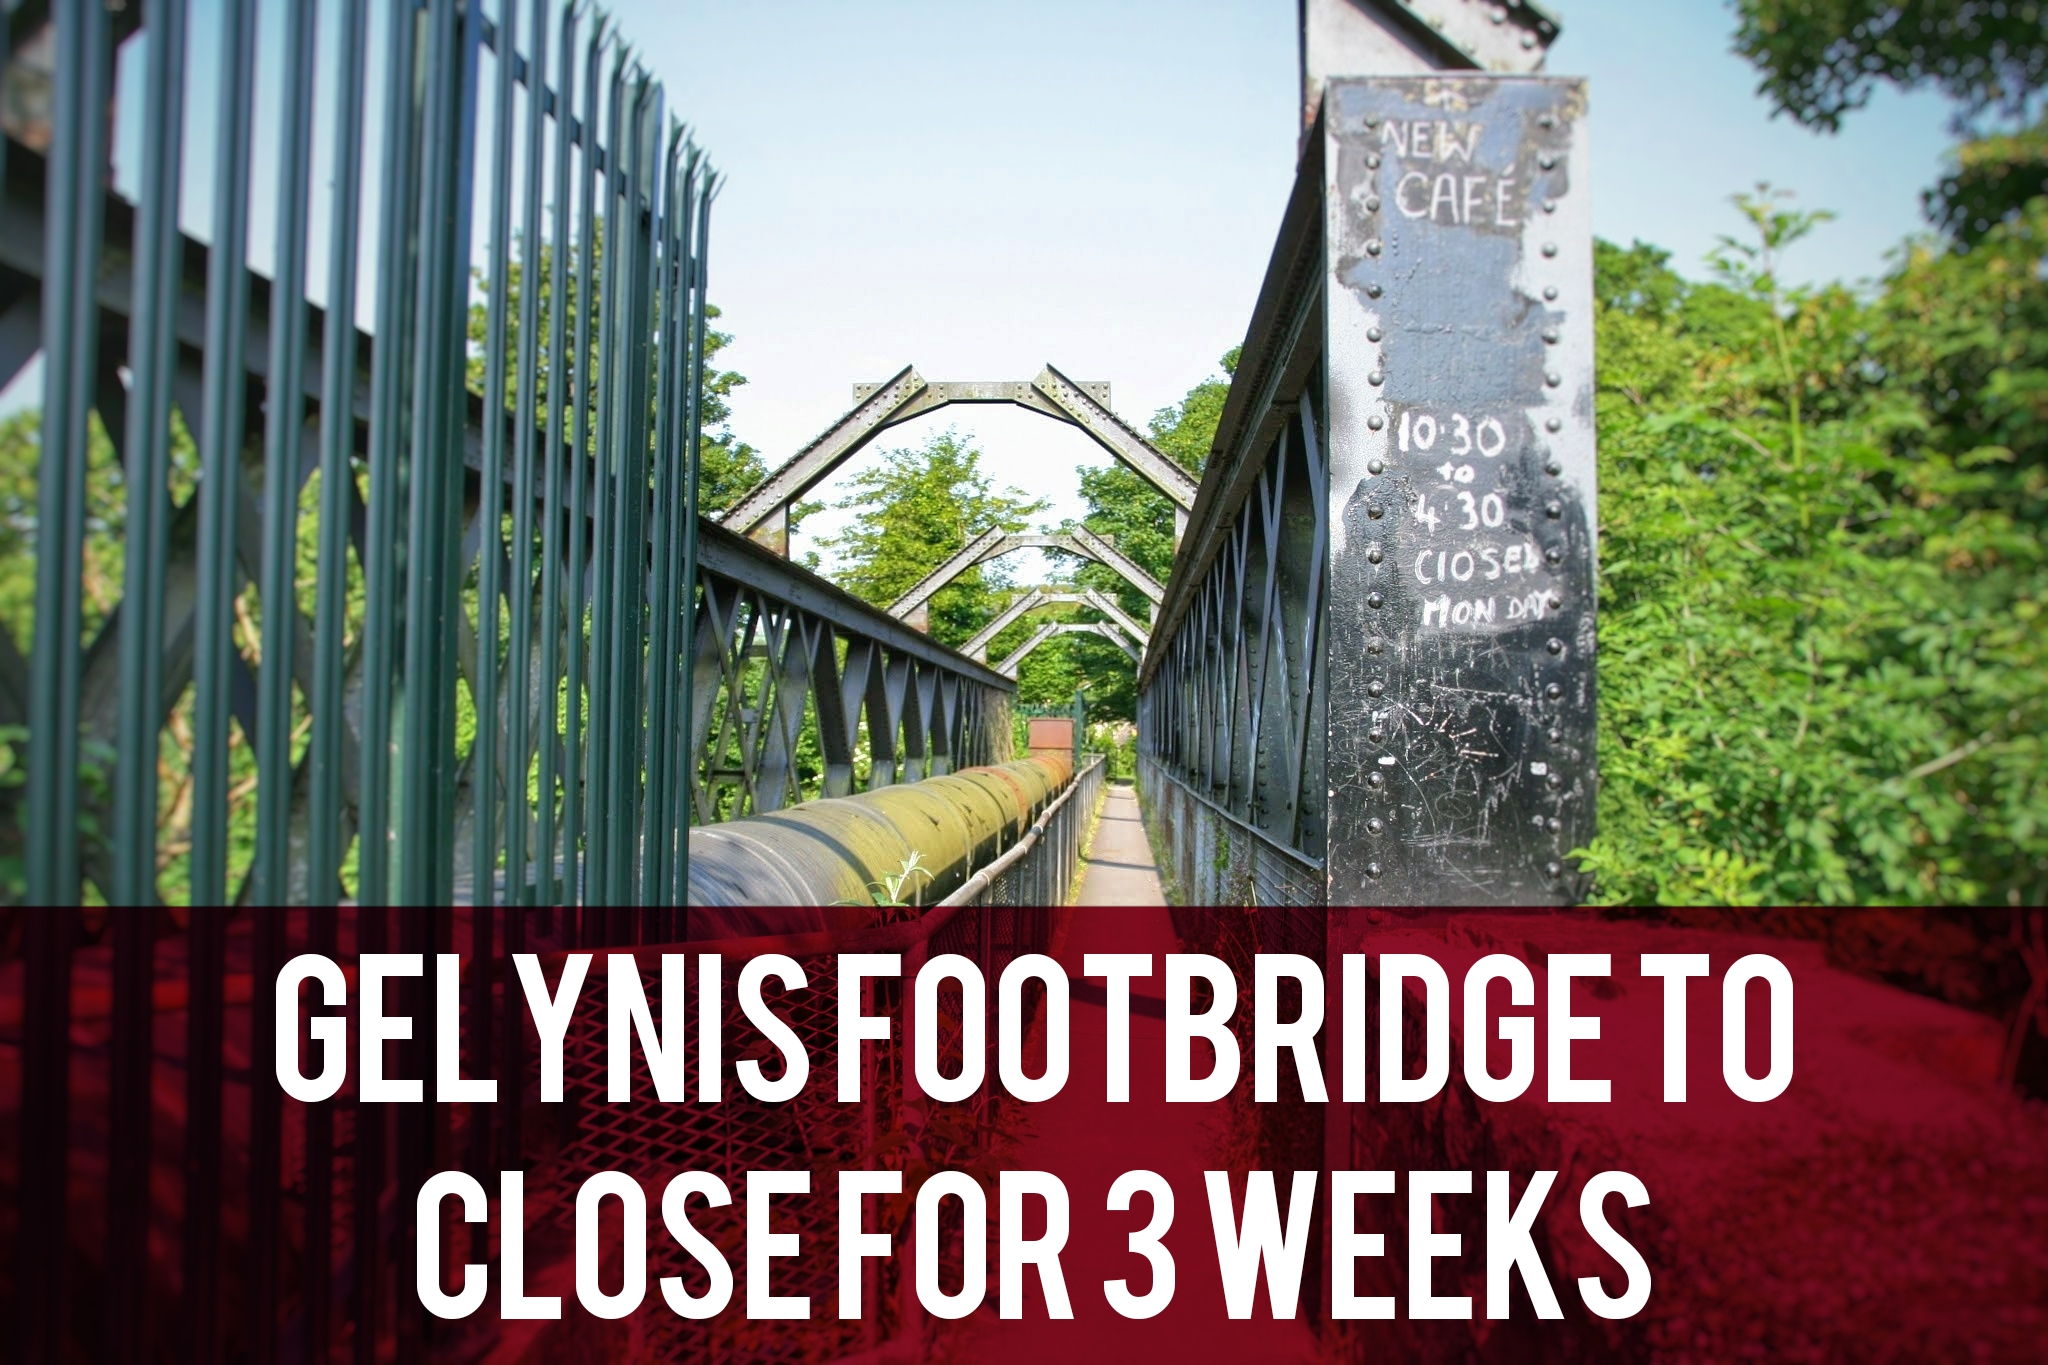 Gelynis footbridge closure header